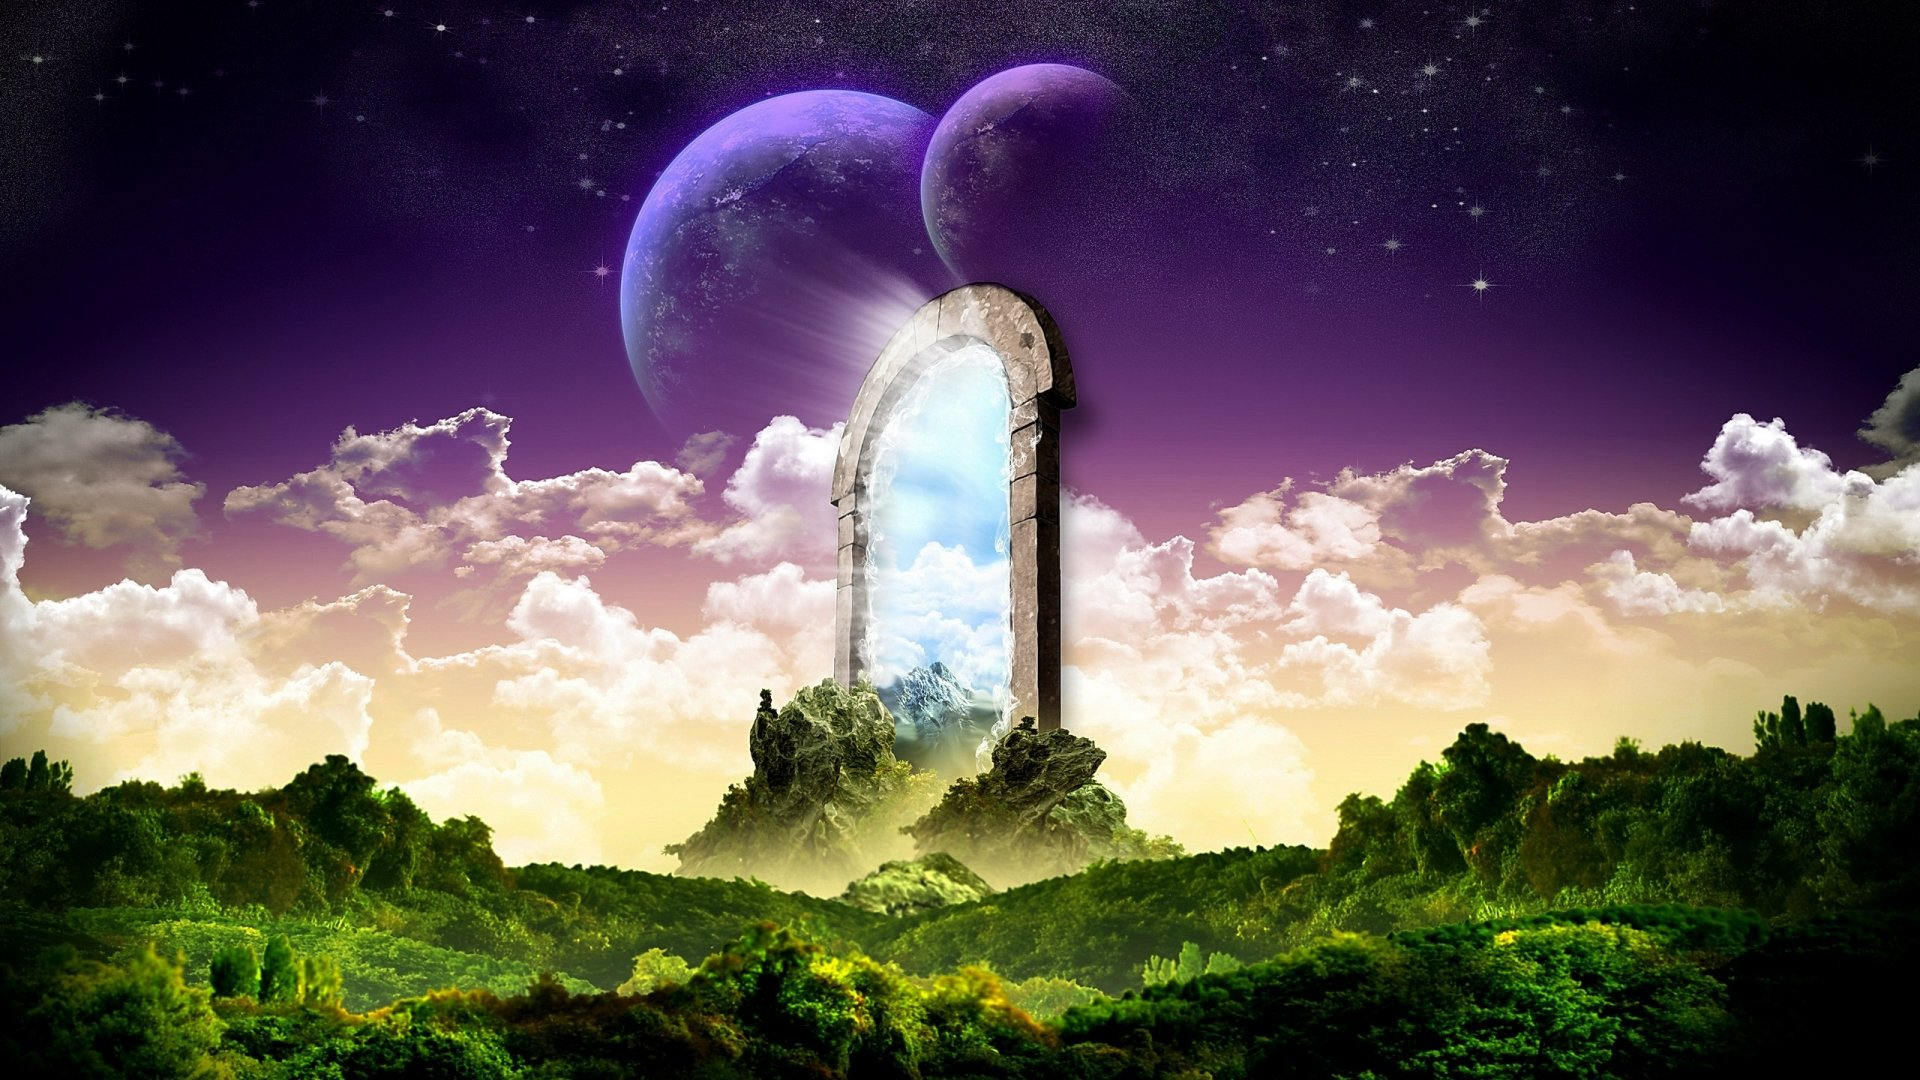 Fantasy - Landscape  Artwork Door Wallpaper